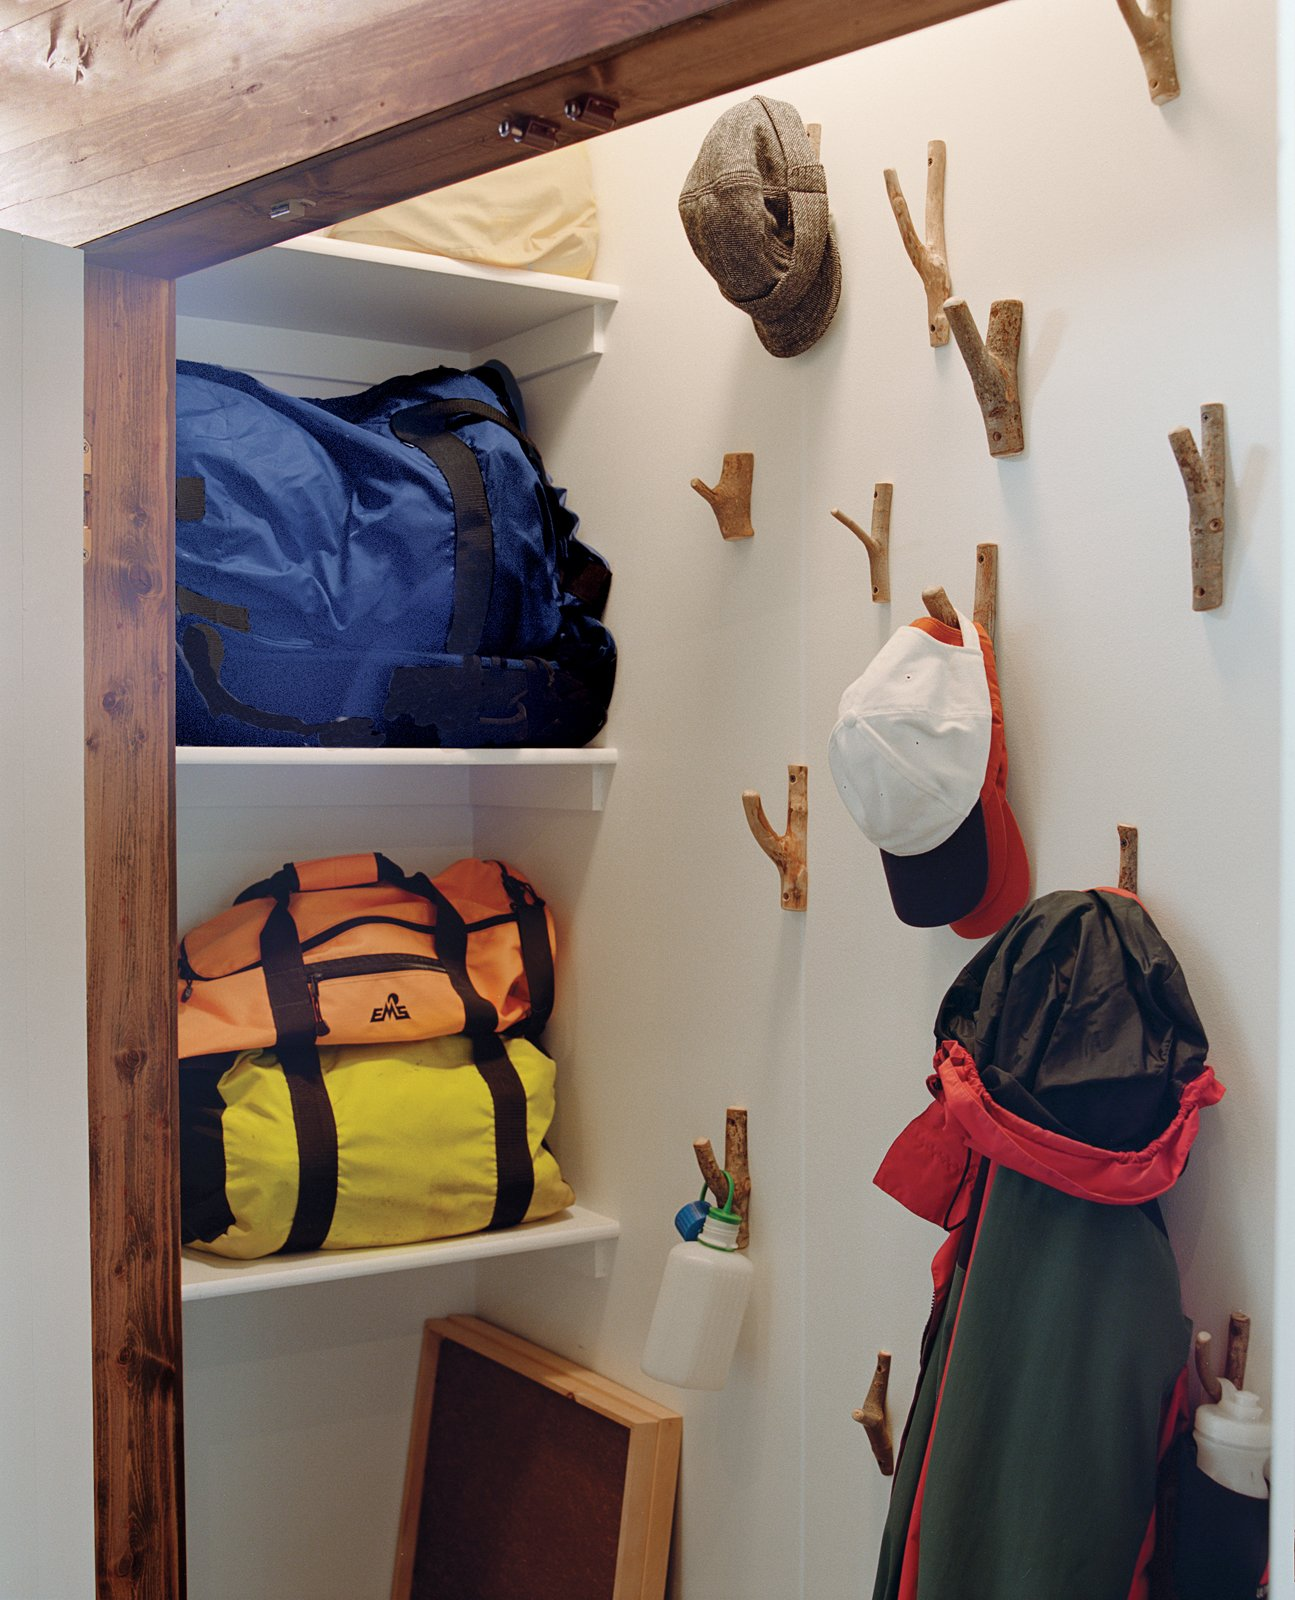 Storage Room and Closet Storage Type In the closet stick-like wall hooks continue the rural motif.  New Grass Roots by Dwell